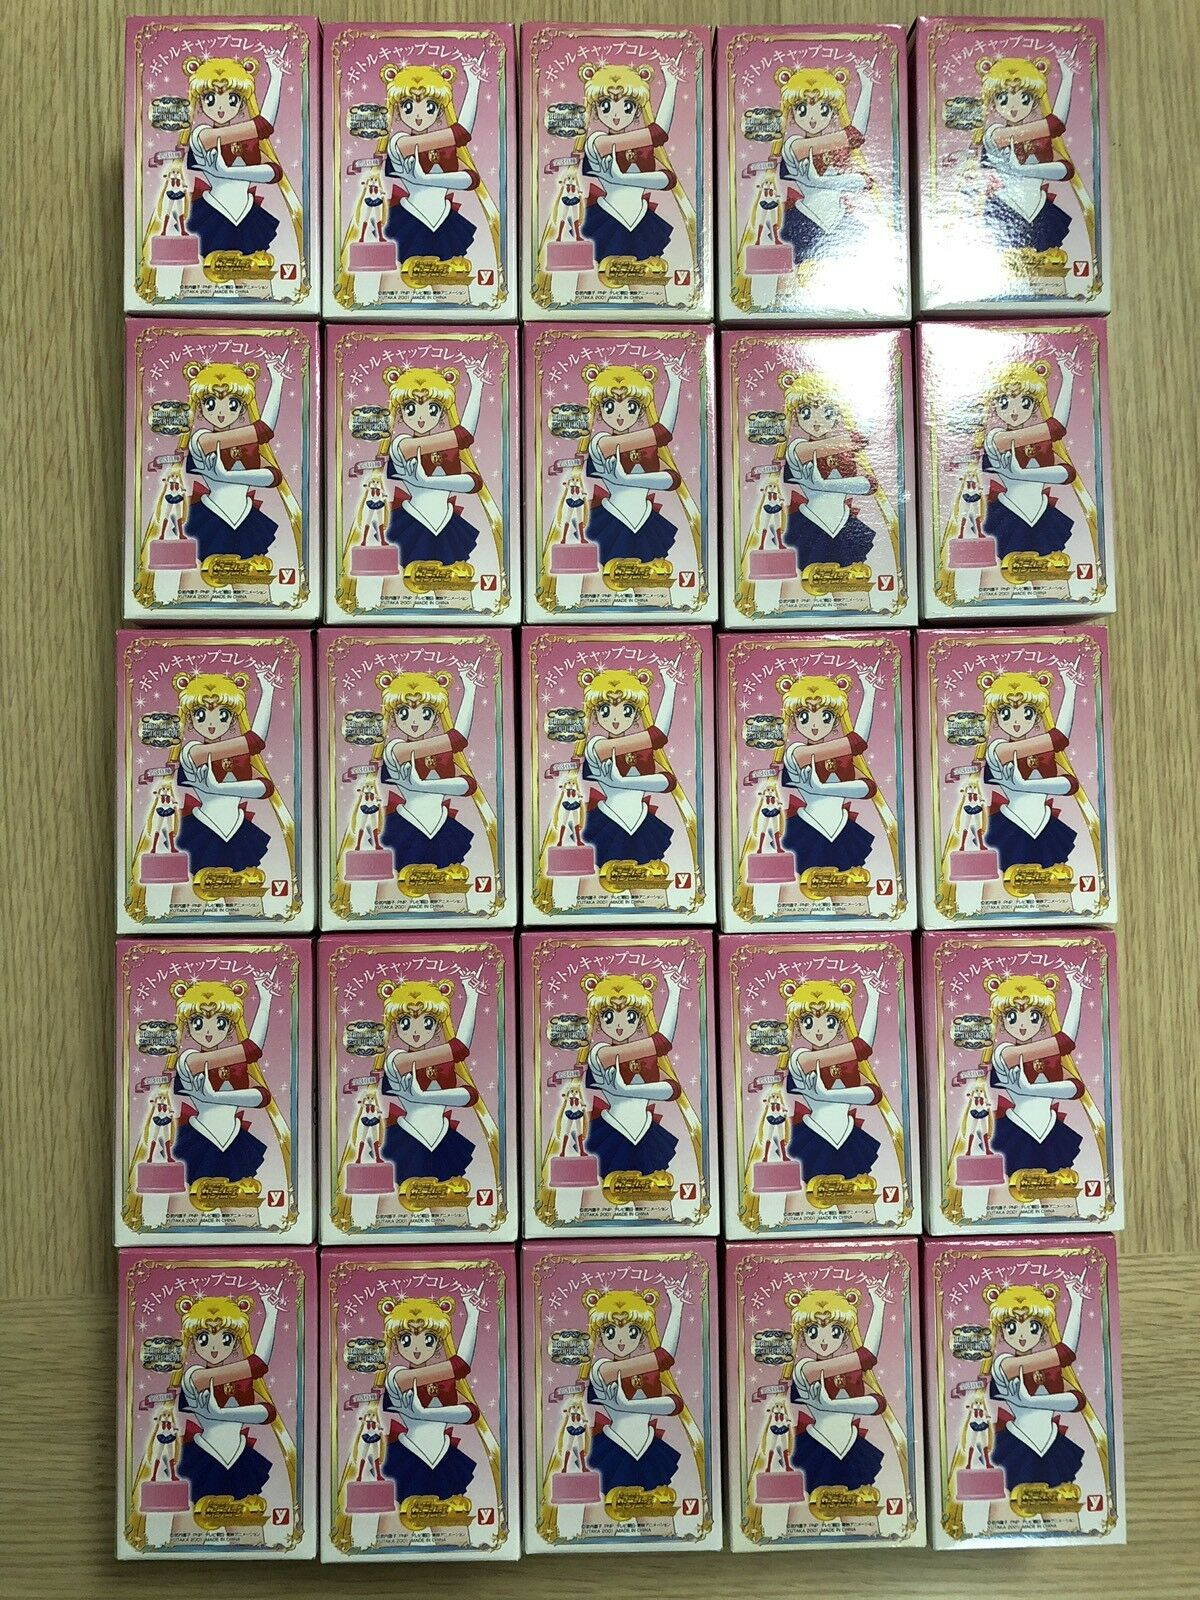 comprar barato Sailor Moon World Bottle Cap Collection Figures Jun Planning Planning Planning 2001  genuina alta calidad